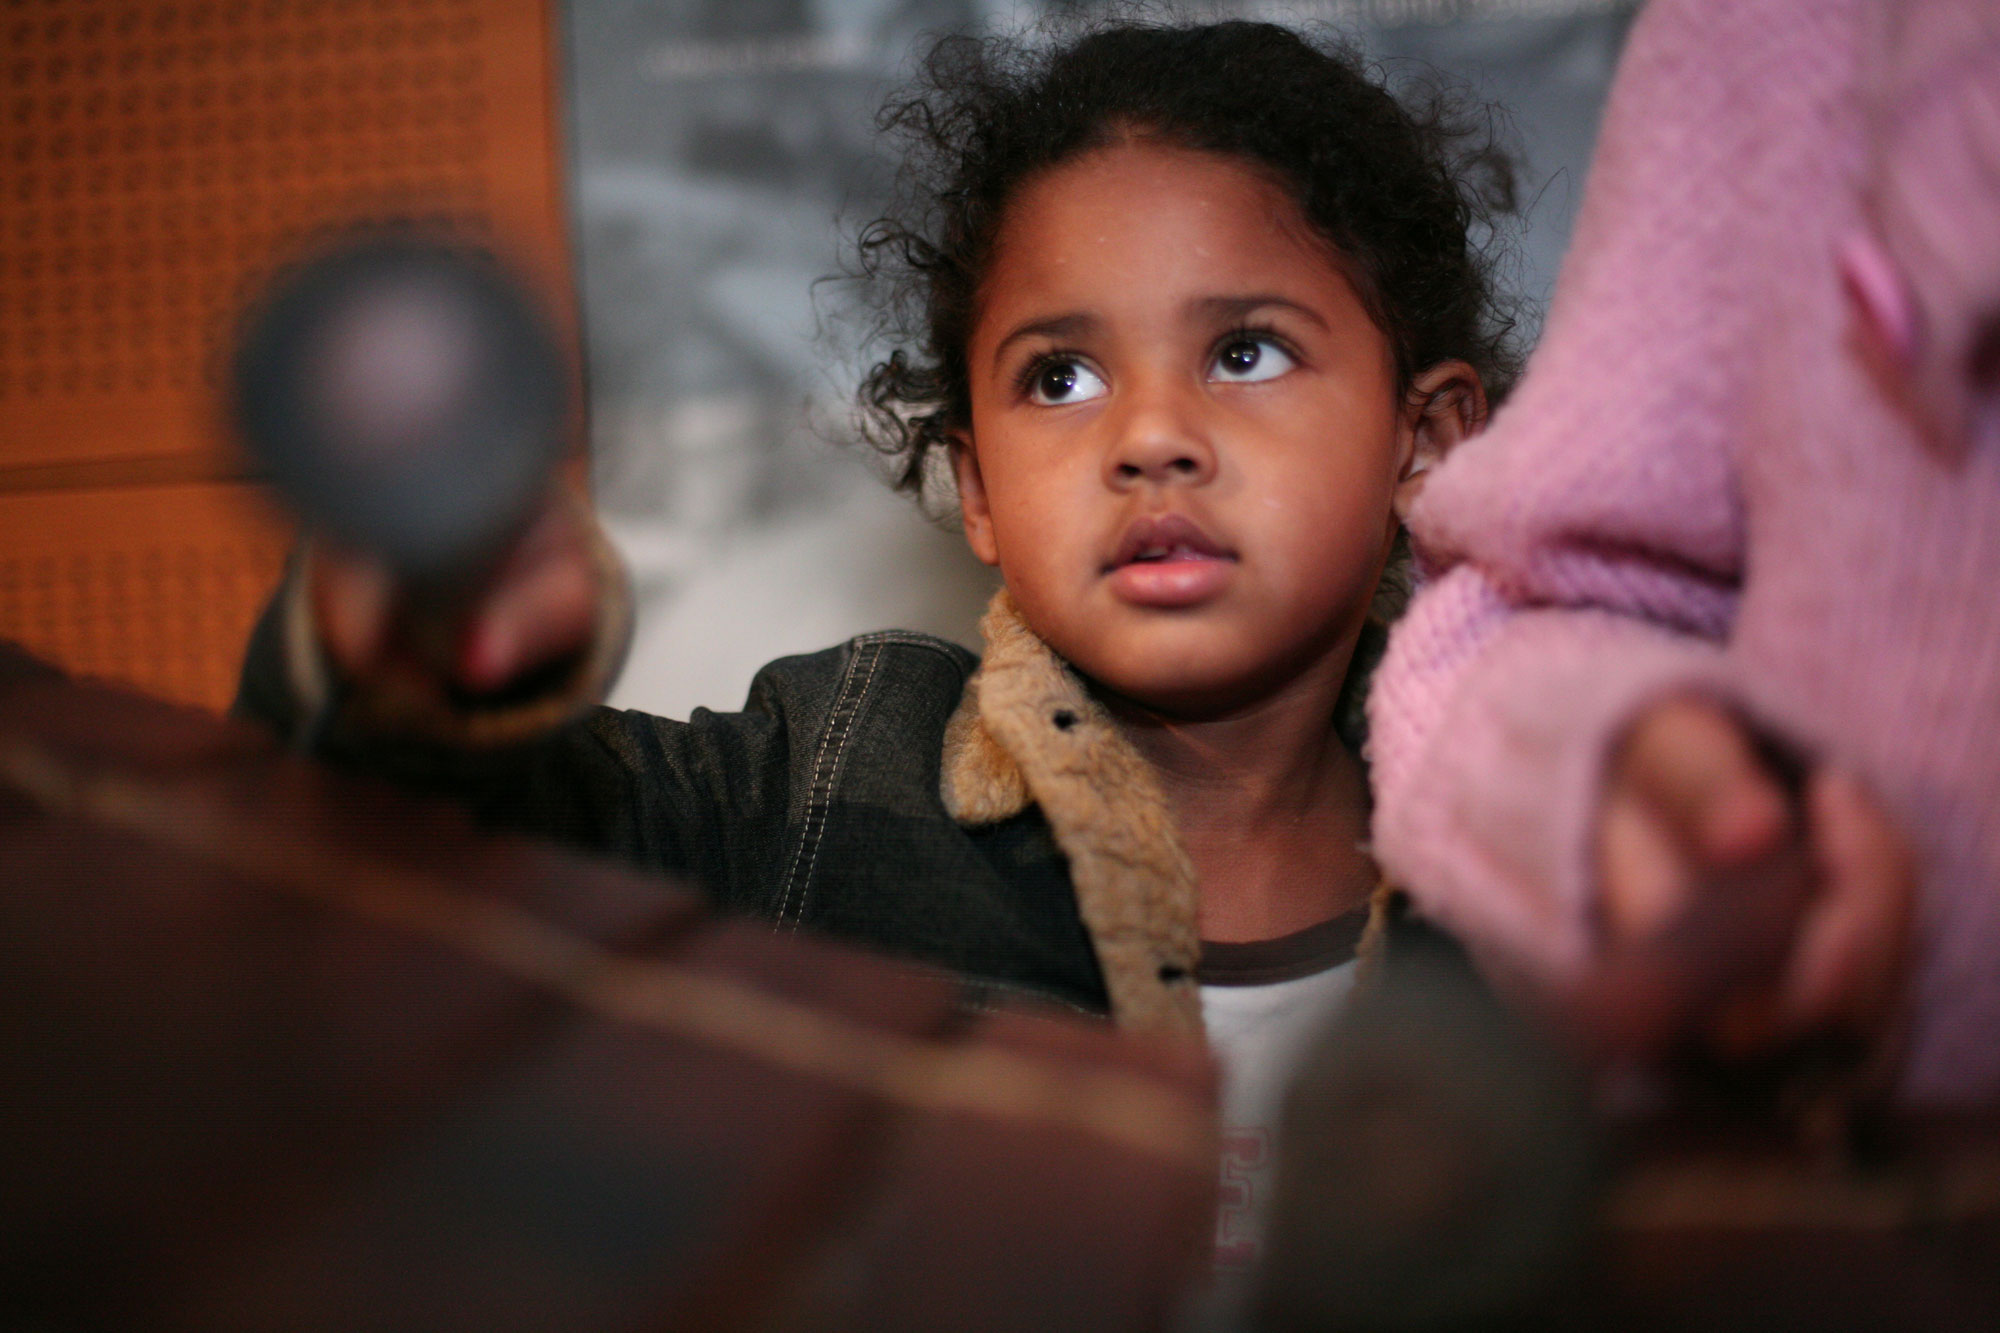 A young girl looks up as she holds a beater over a wooden instrument. Another child is just seen to the side